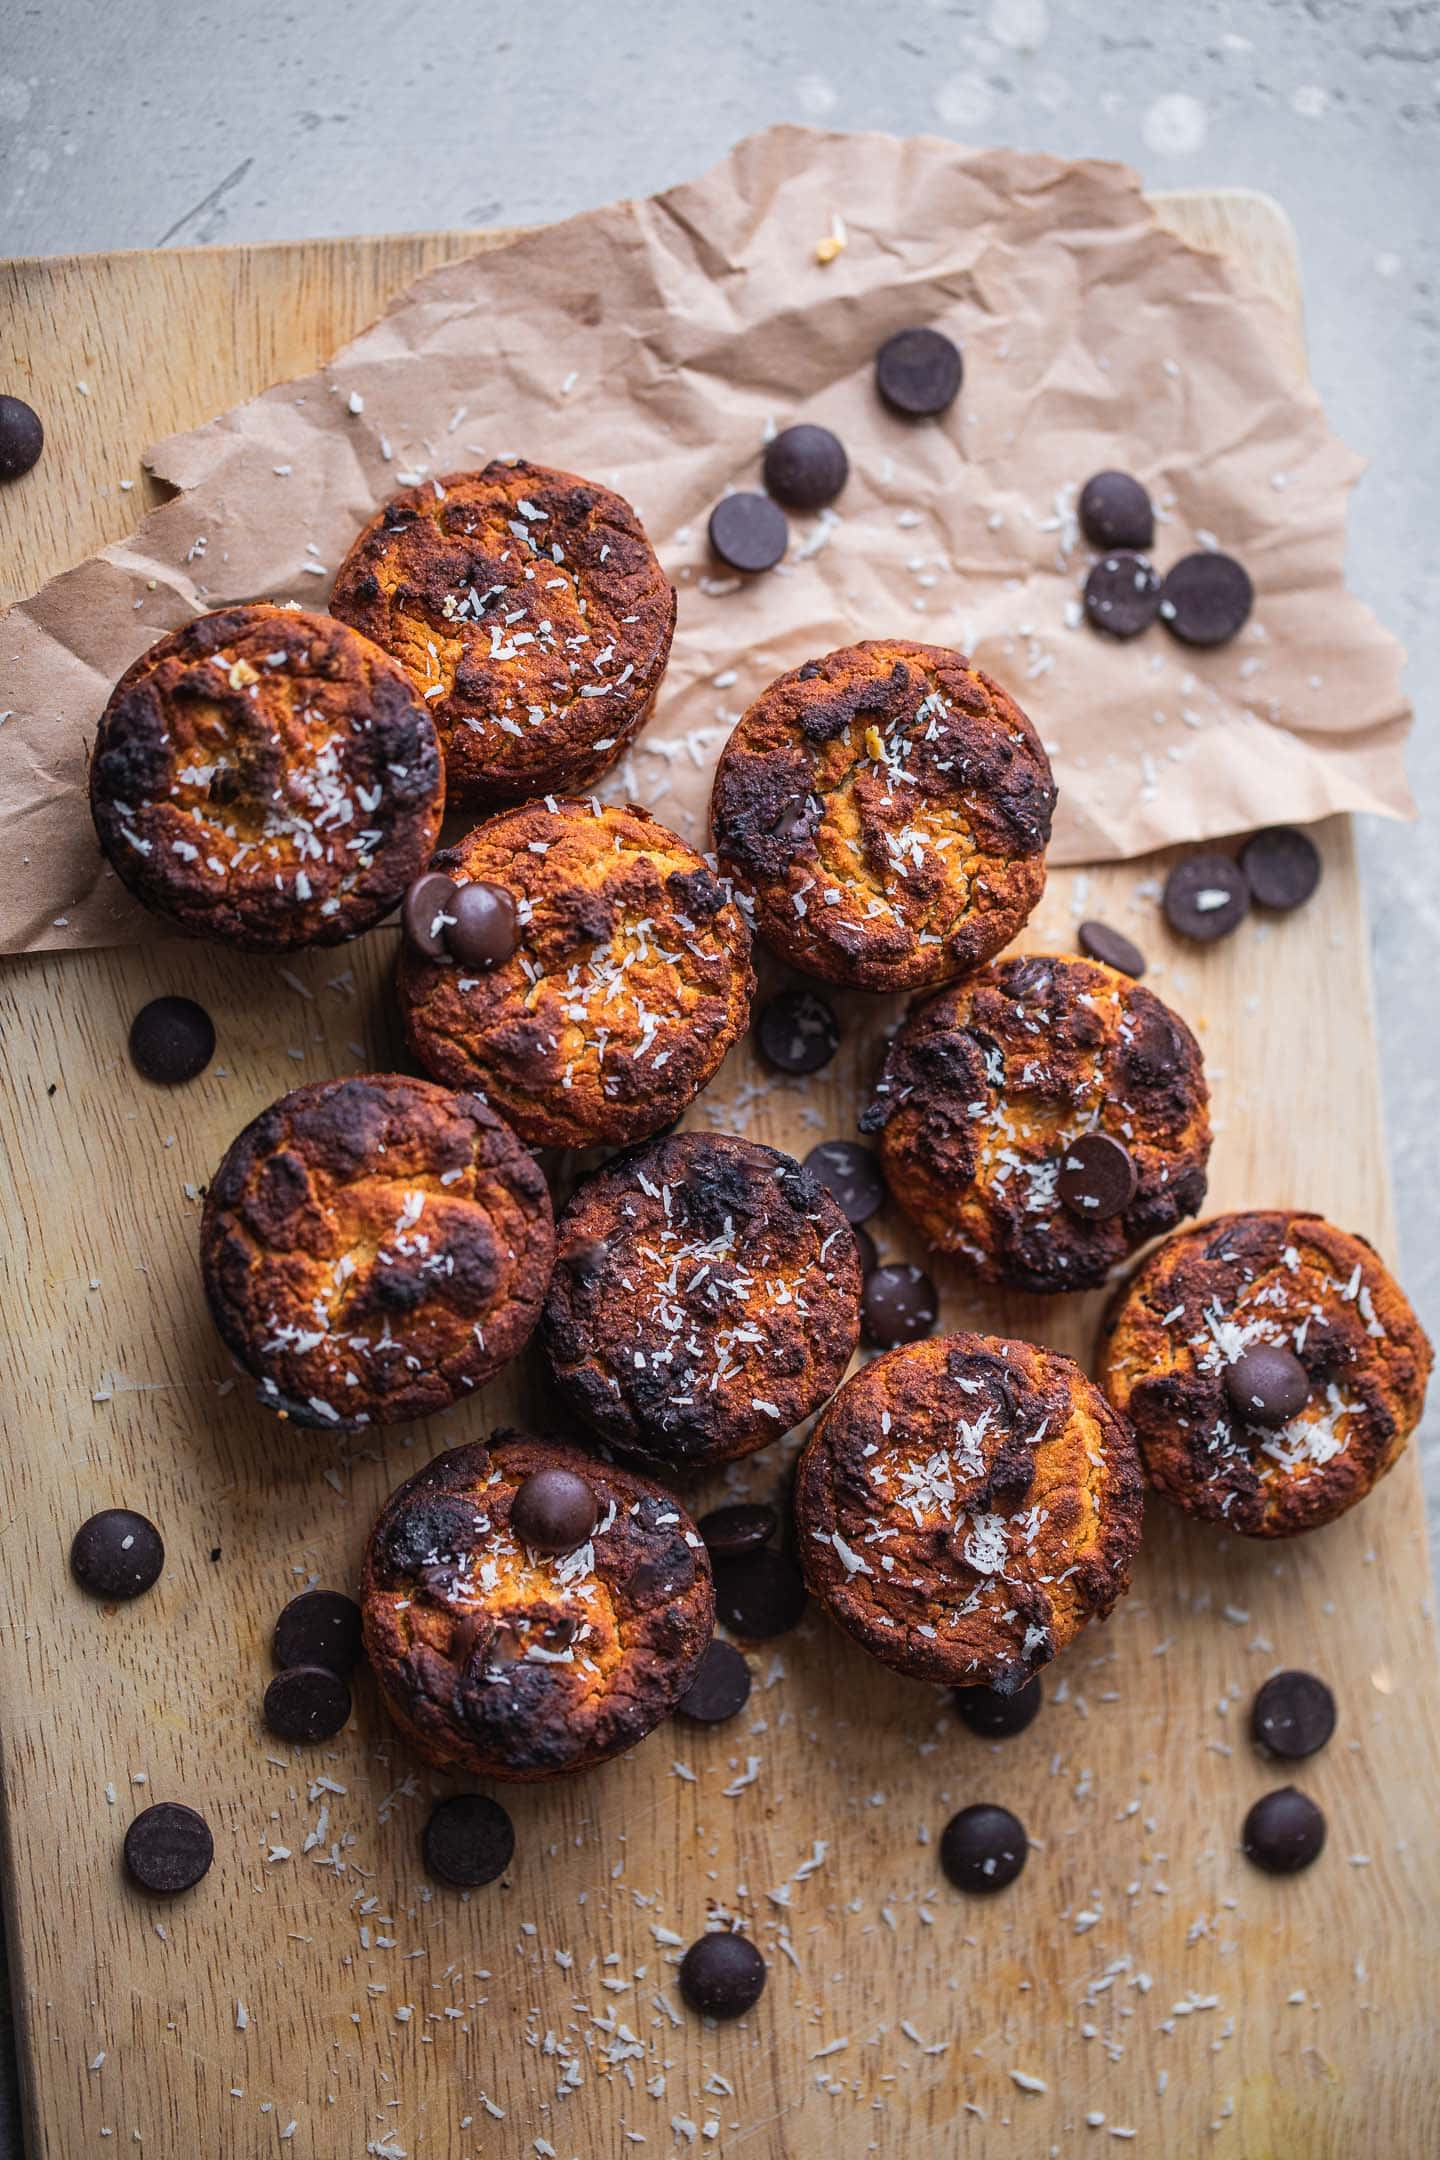 Dairy-free muffins with chocolate chips on a wooden board